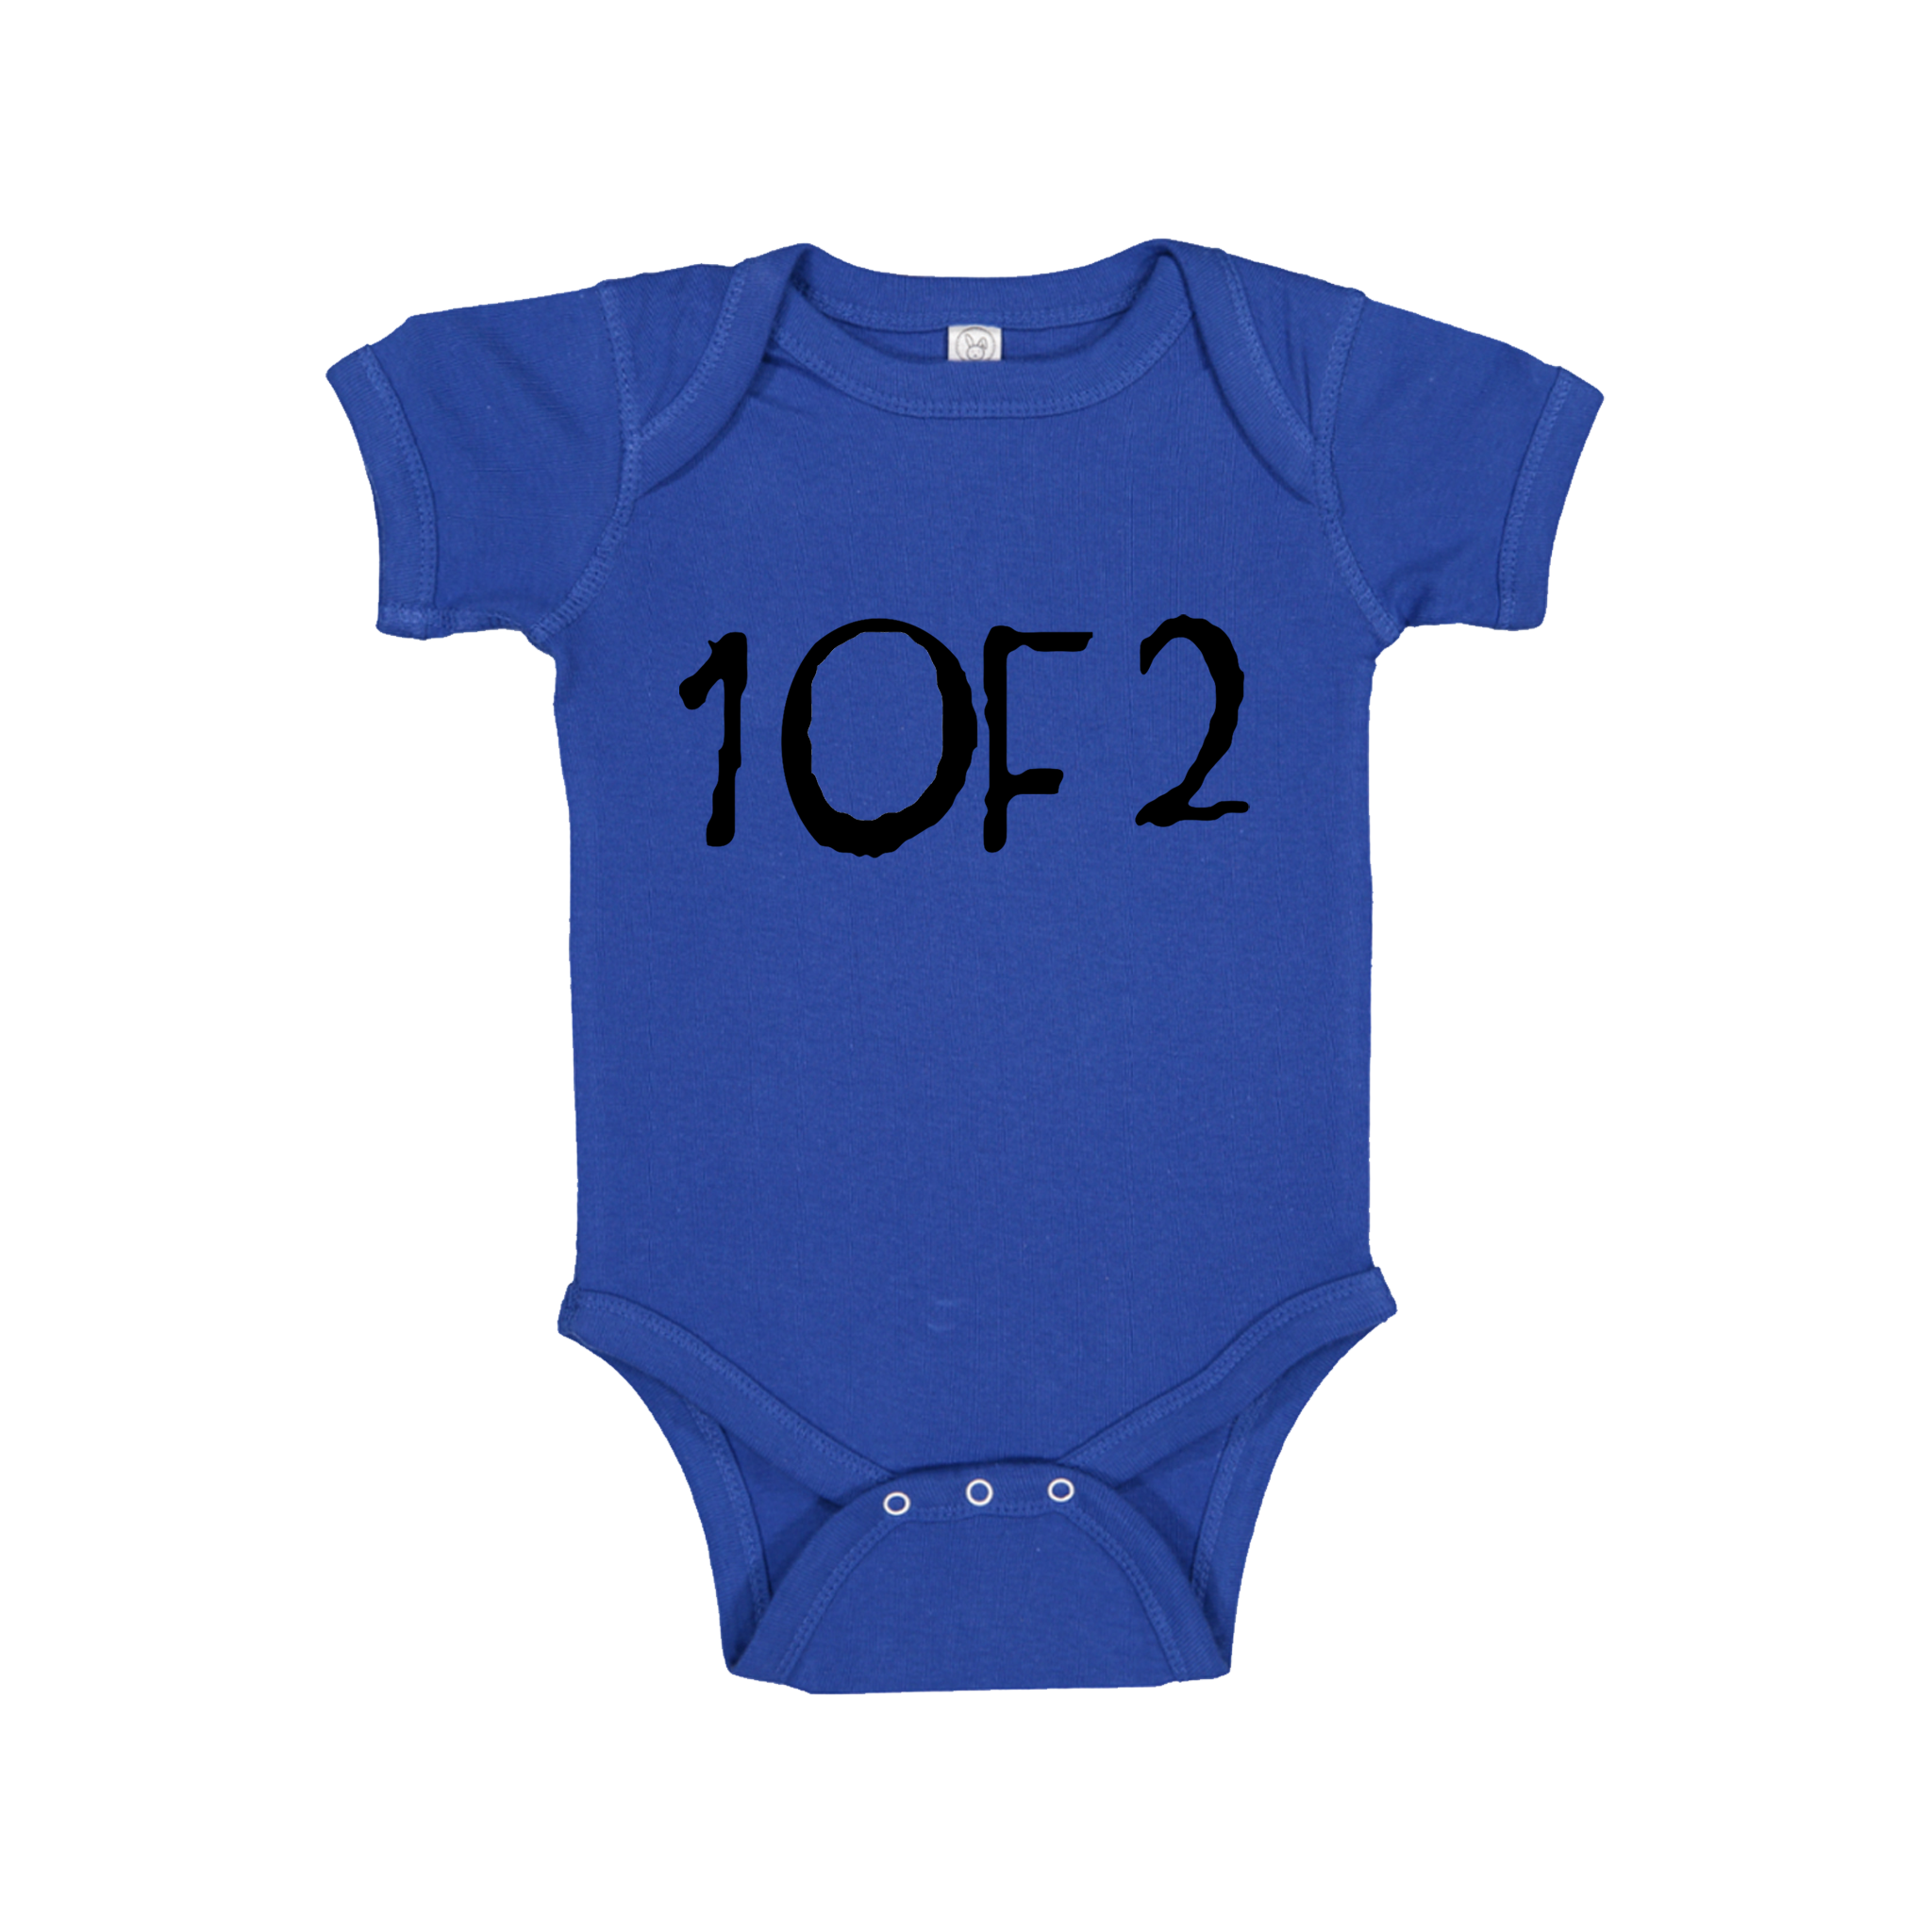 Twins One of Two (1 of 2) Baby Onesie Matching  - 0 to 24 months - Festival Printing